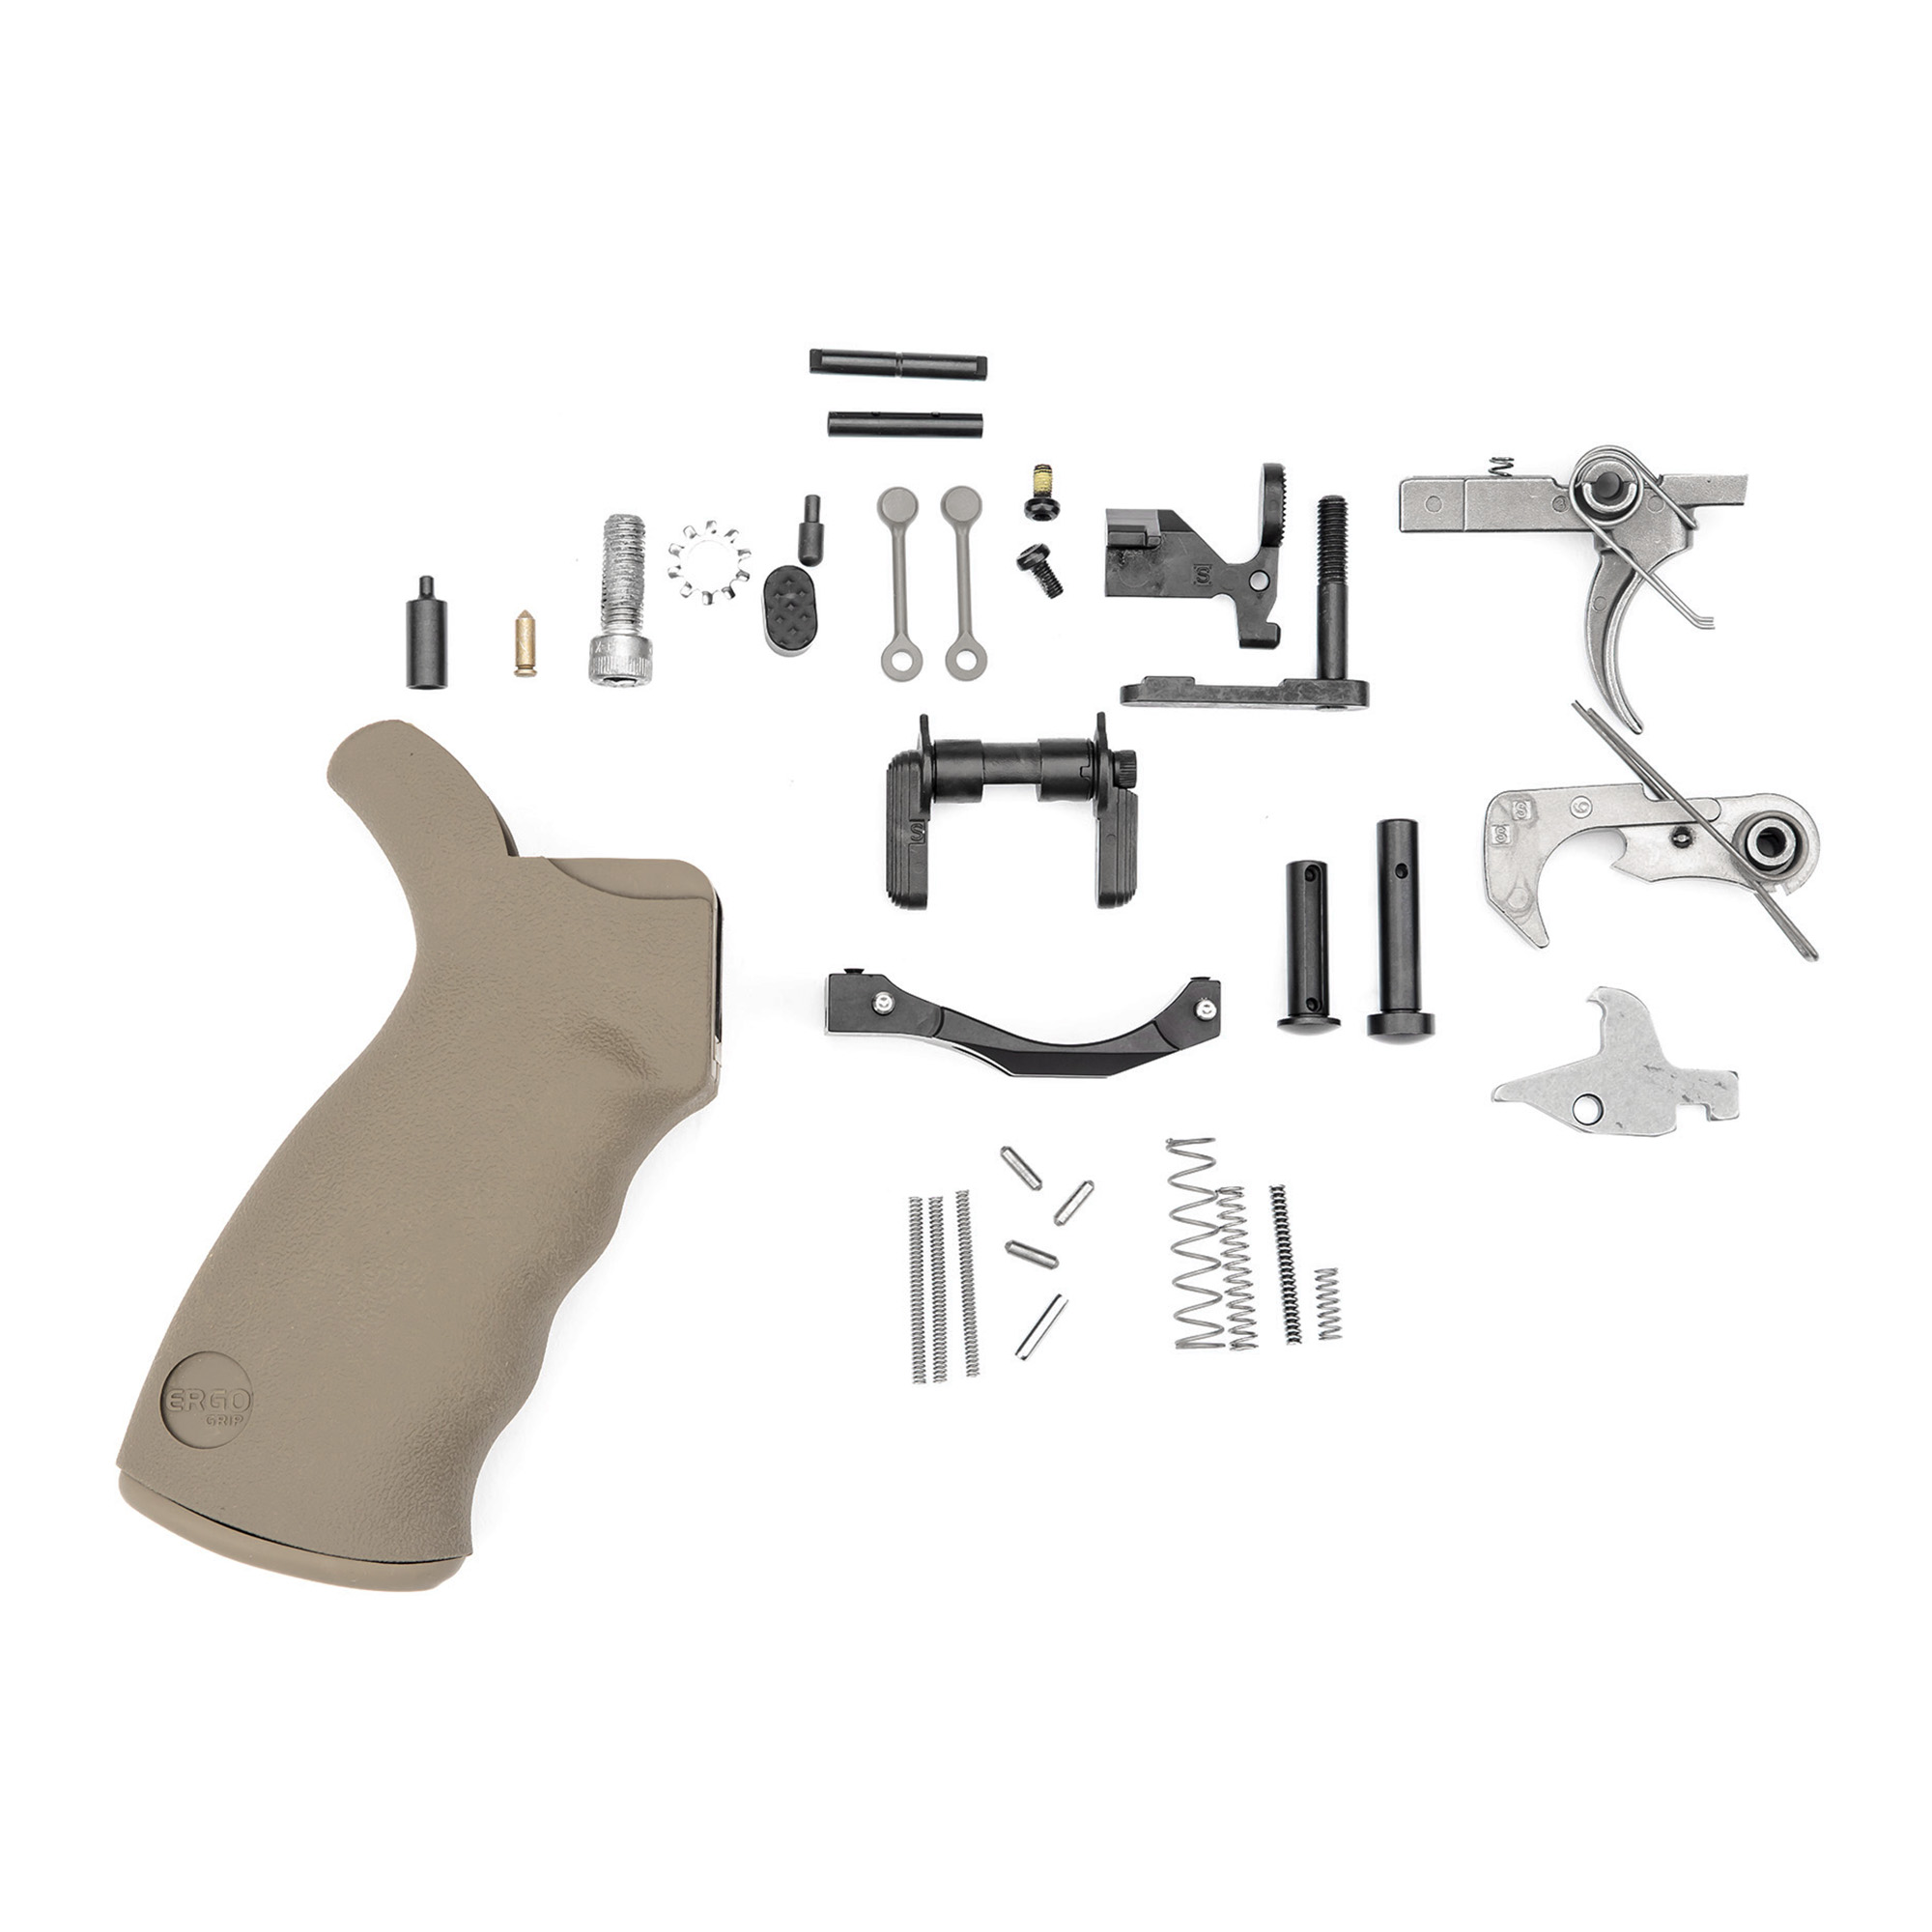 "If you're looking for the highest quality and most durable Lower Parts Kit on the market with all of the upgrades"" look no further. The Spike's Tactical Enhanced LPK was designed for the end user who demands the most longevity possible out of the parts in their rifles. Proudly made in the USA."